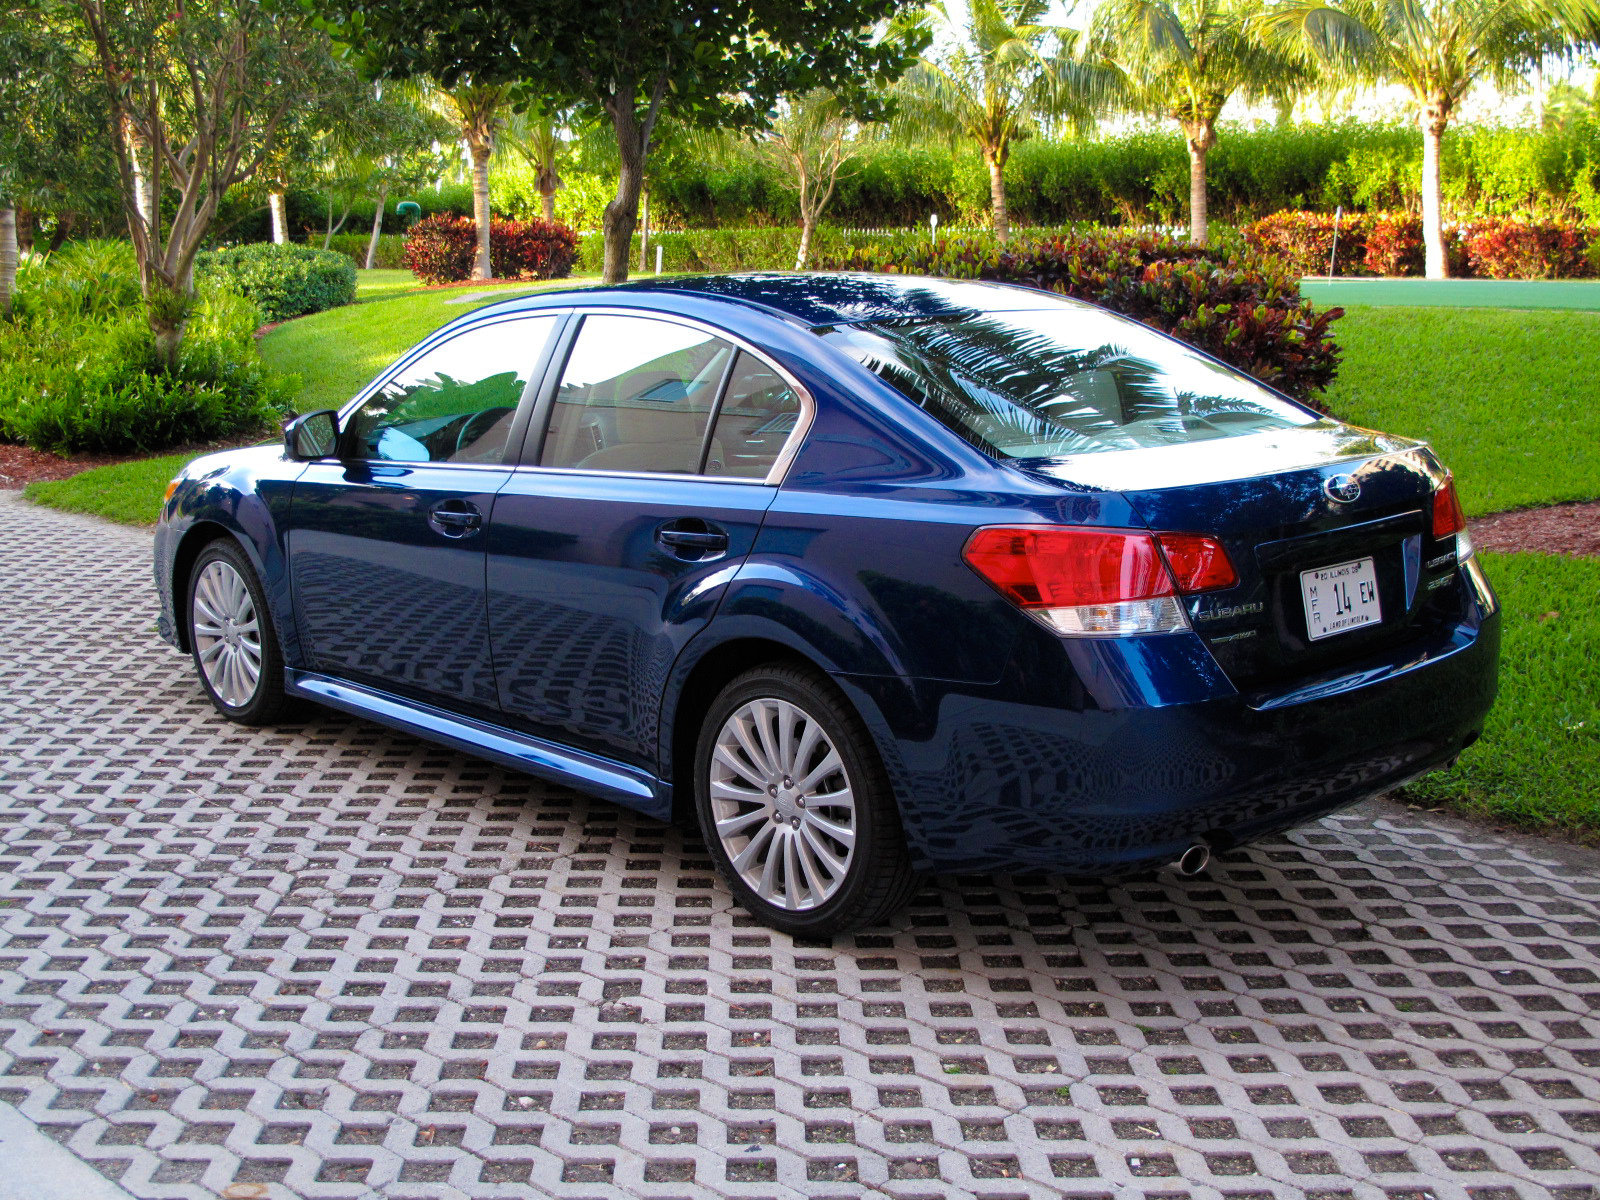 2010 subaru legacy 2 5 gt picture 345508 car review top speed. Black Bedroom Furniture Sets. Home Design Ideas